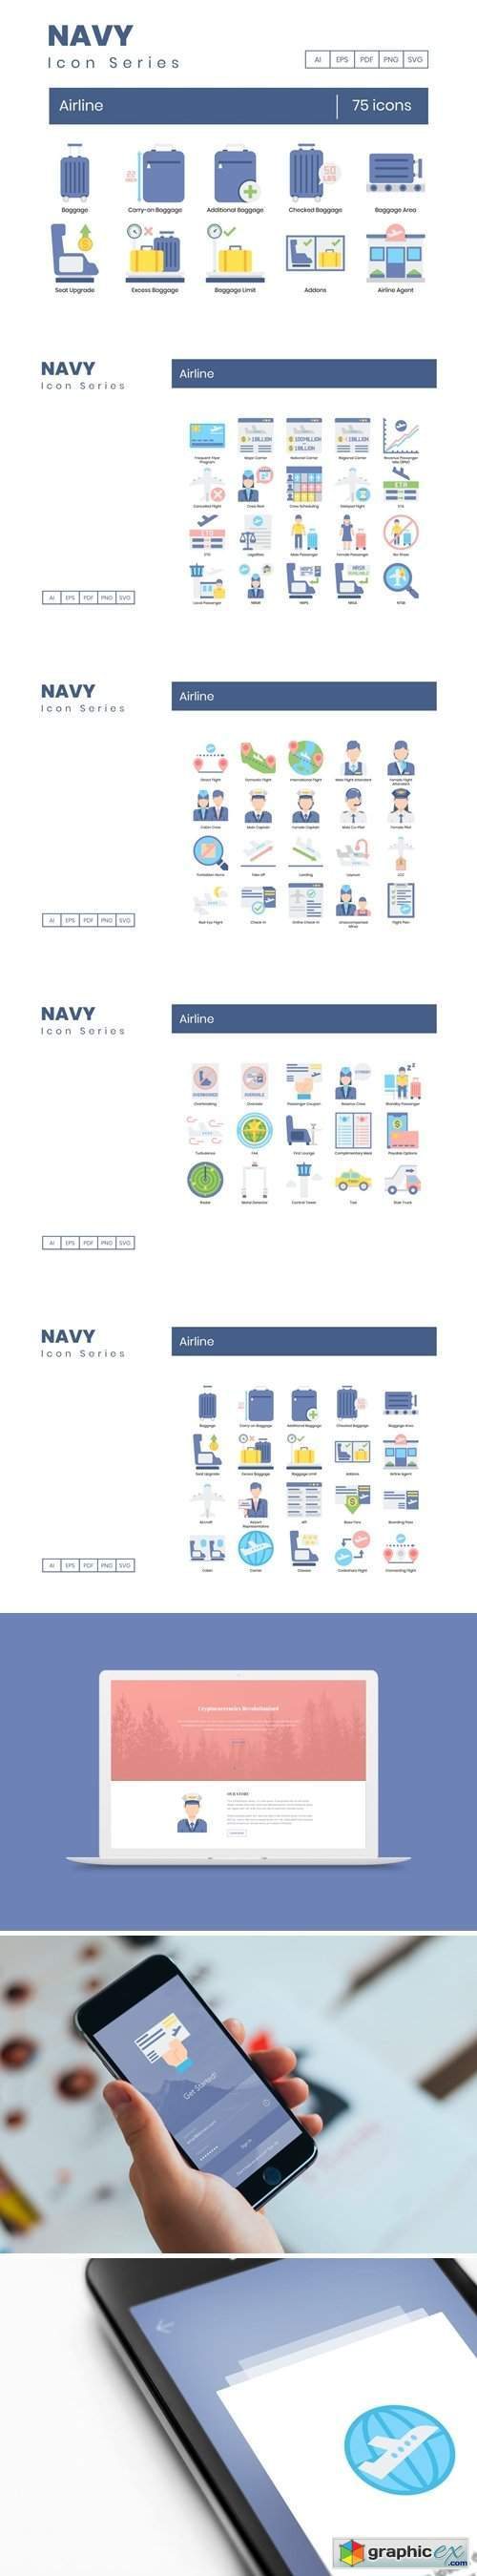 75 Airline Icons | Navy Series